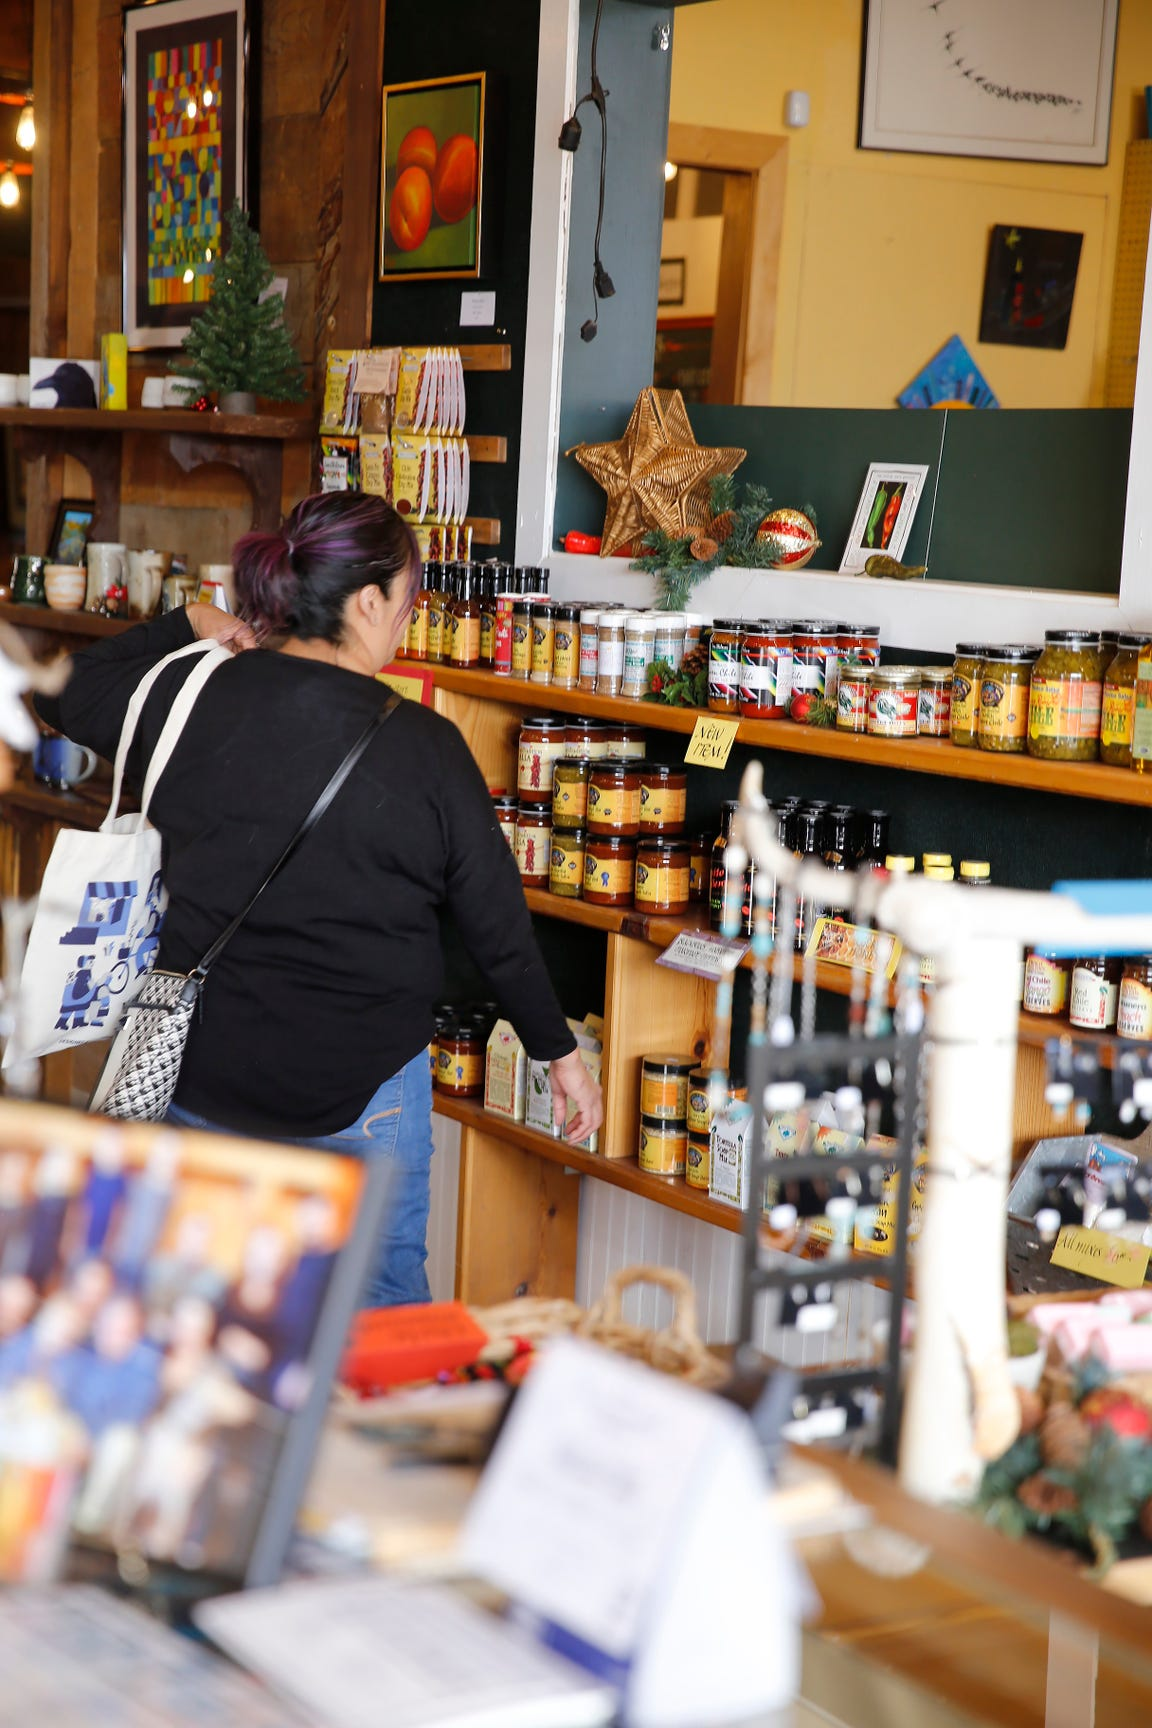 A shopper browses the specialty food display inside Artifacts Gallery during the Small Business Saturday event in Downtown Farmington this weekend.